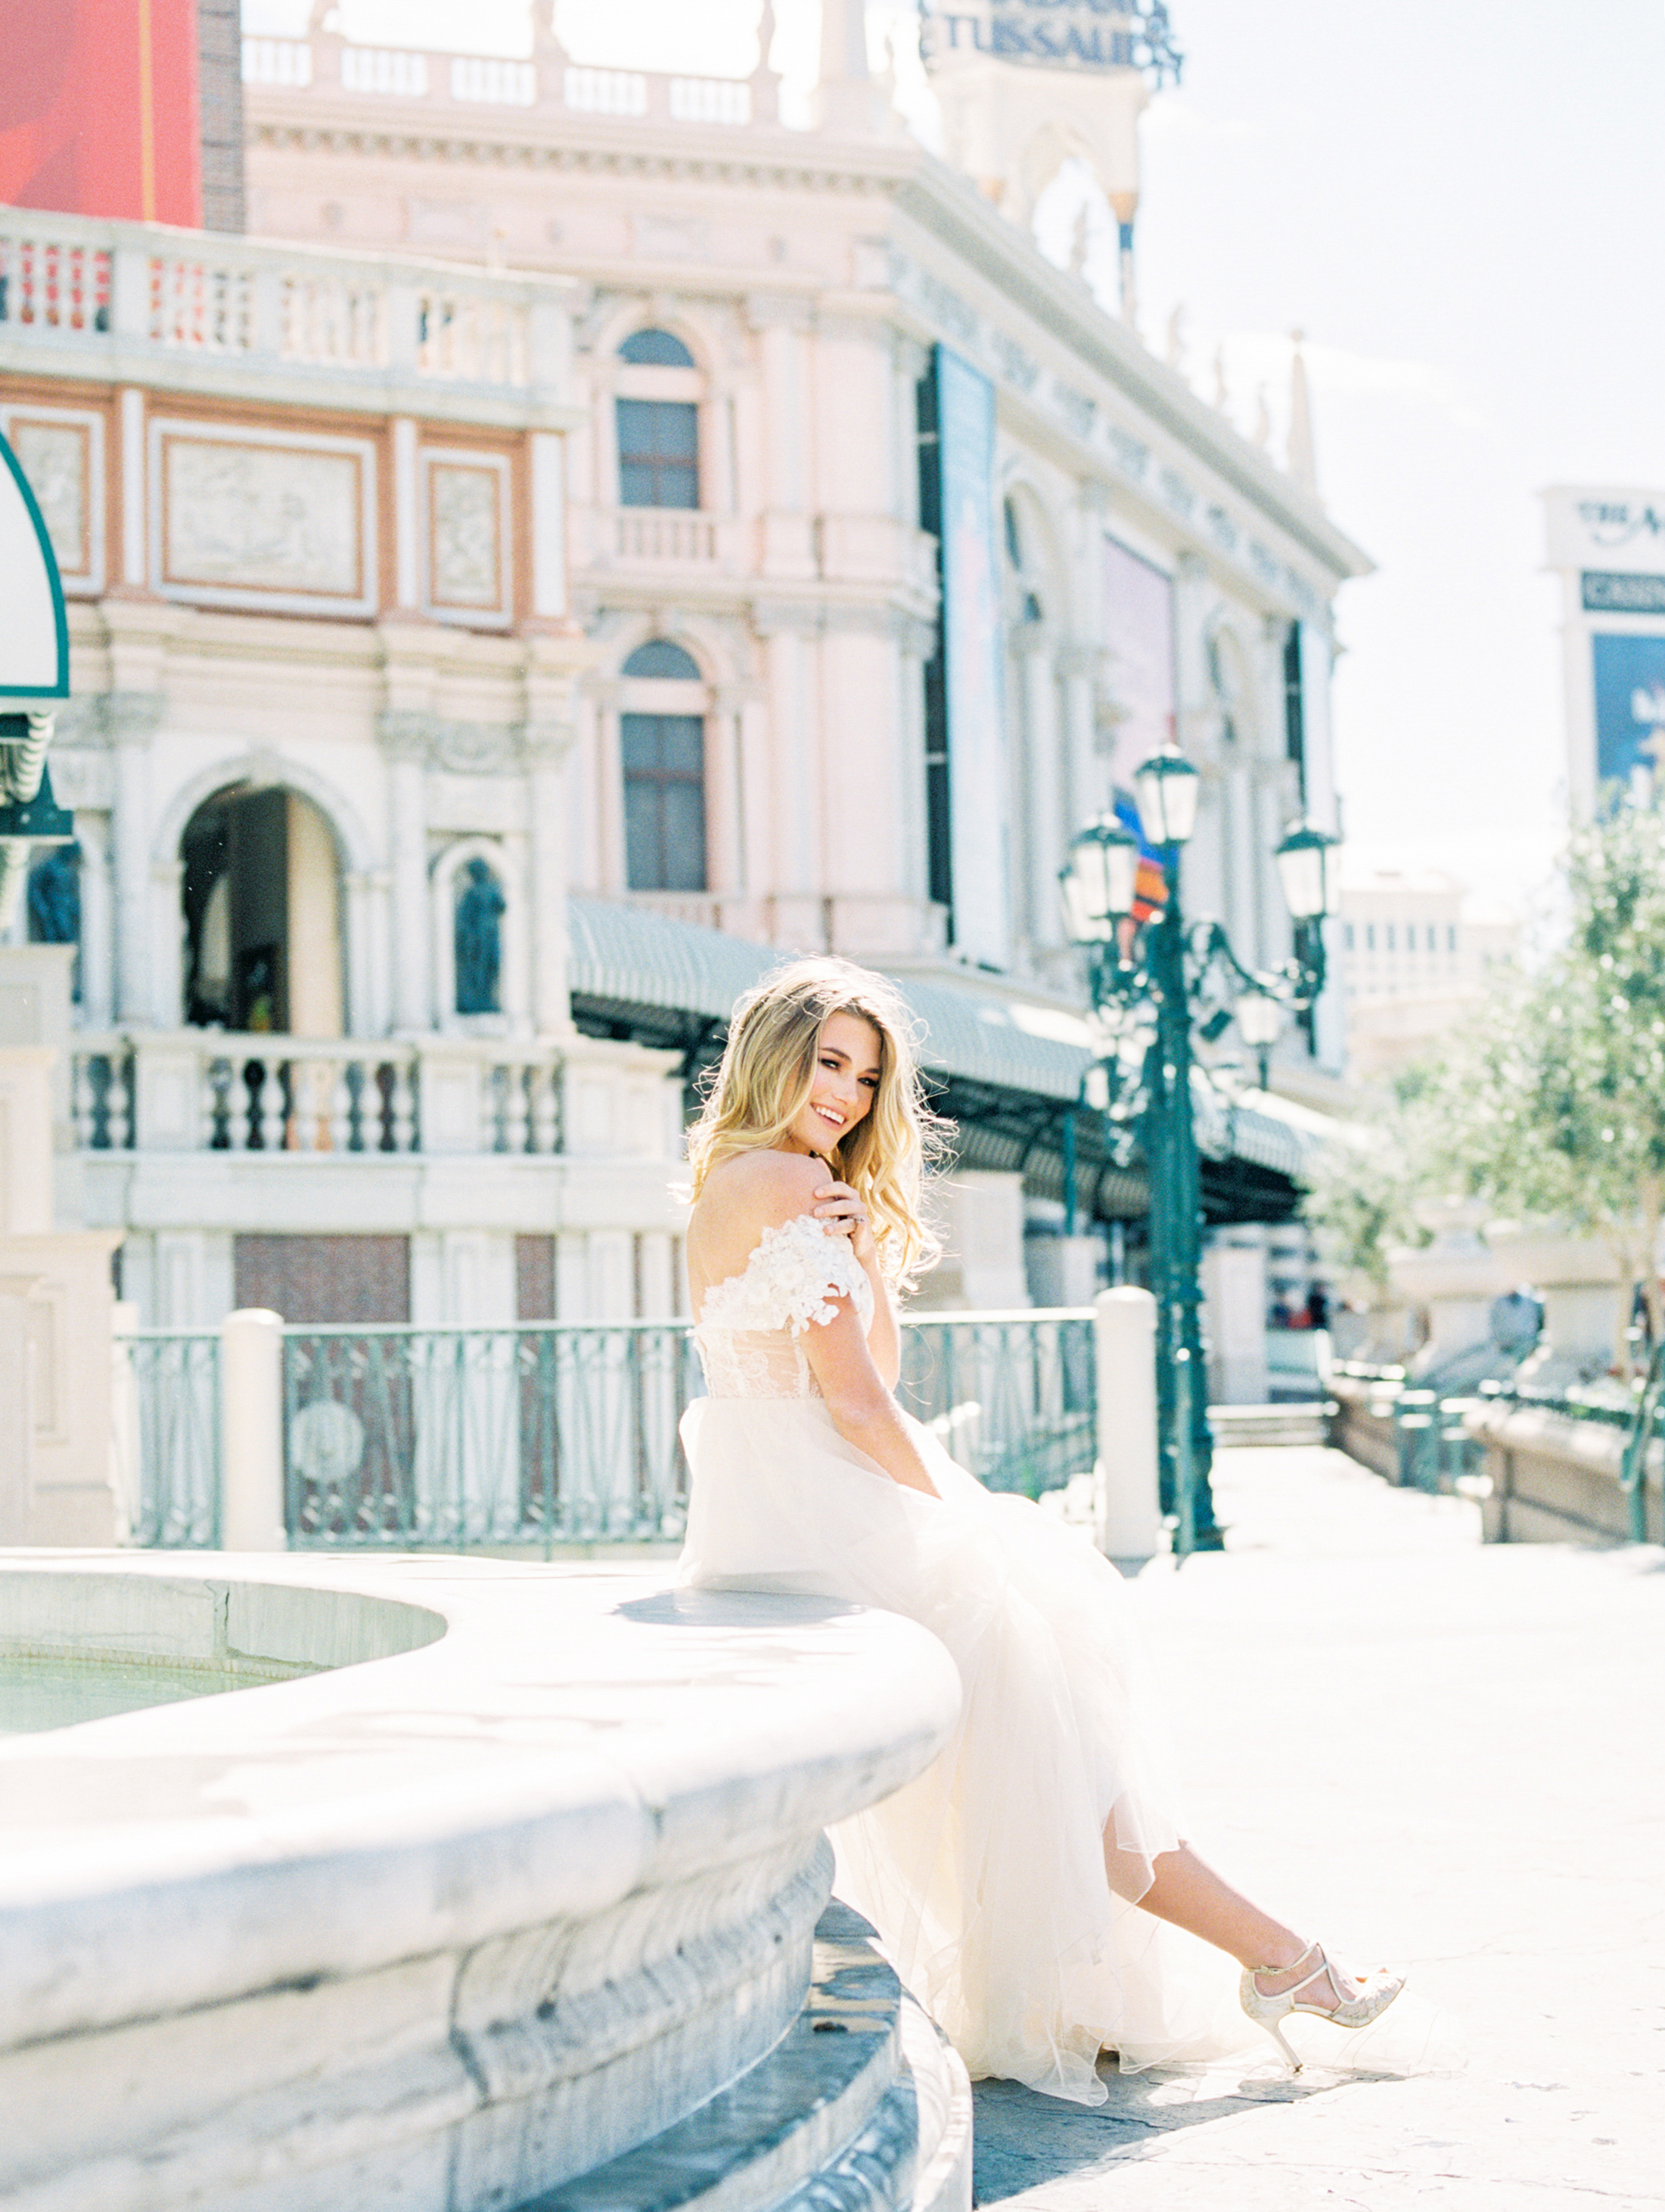 Waking Up in Vegas Editorial- Lisa Silva Photography-51.jpg